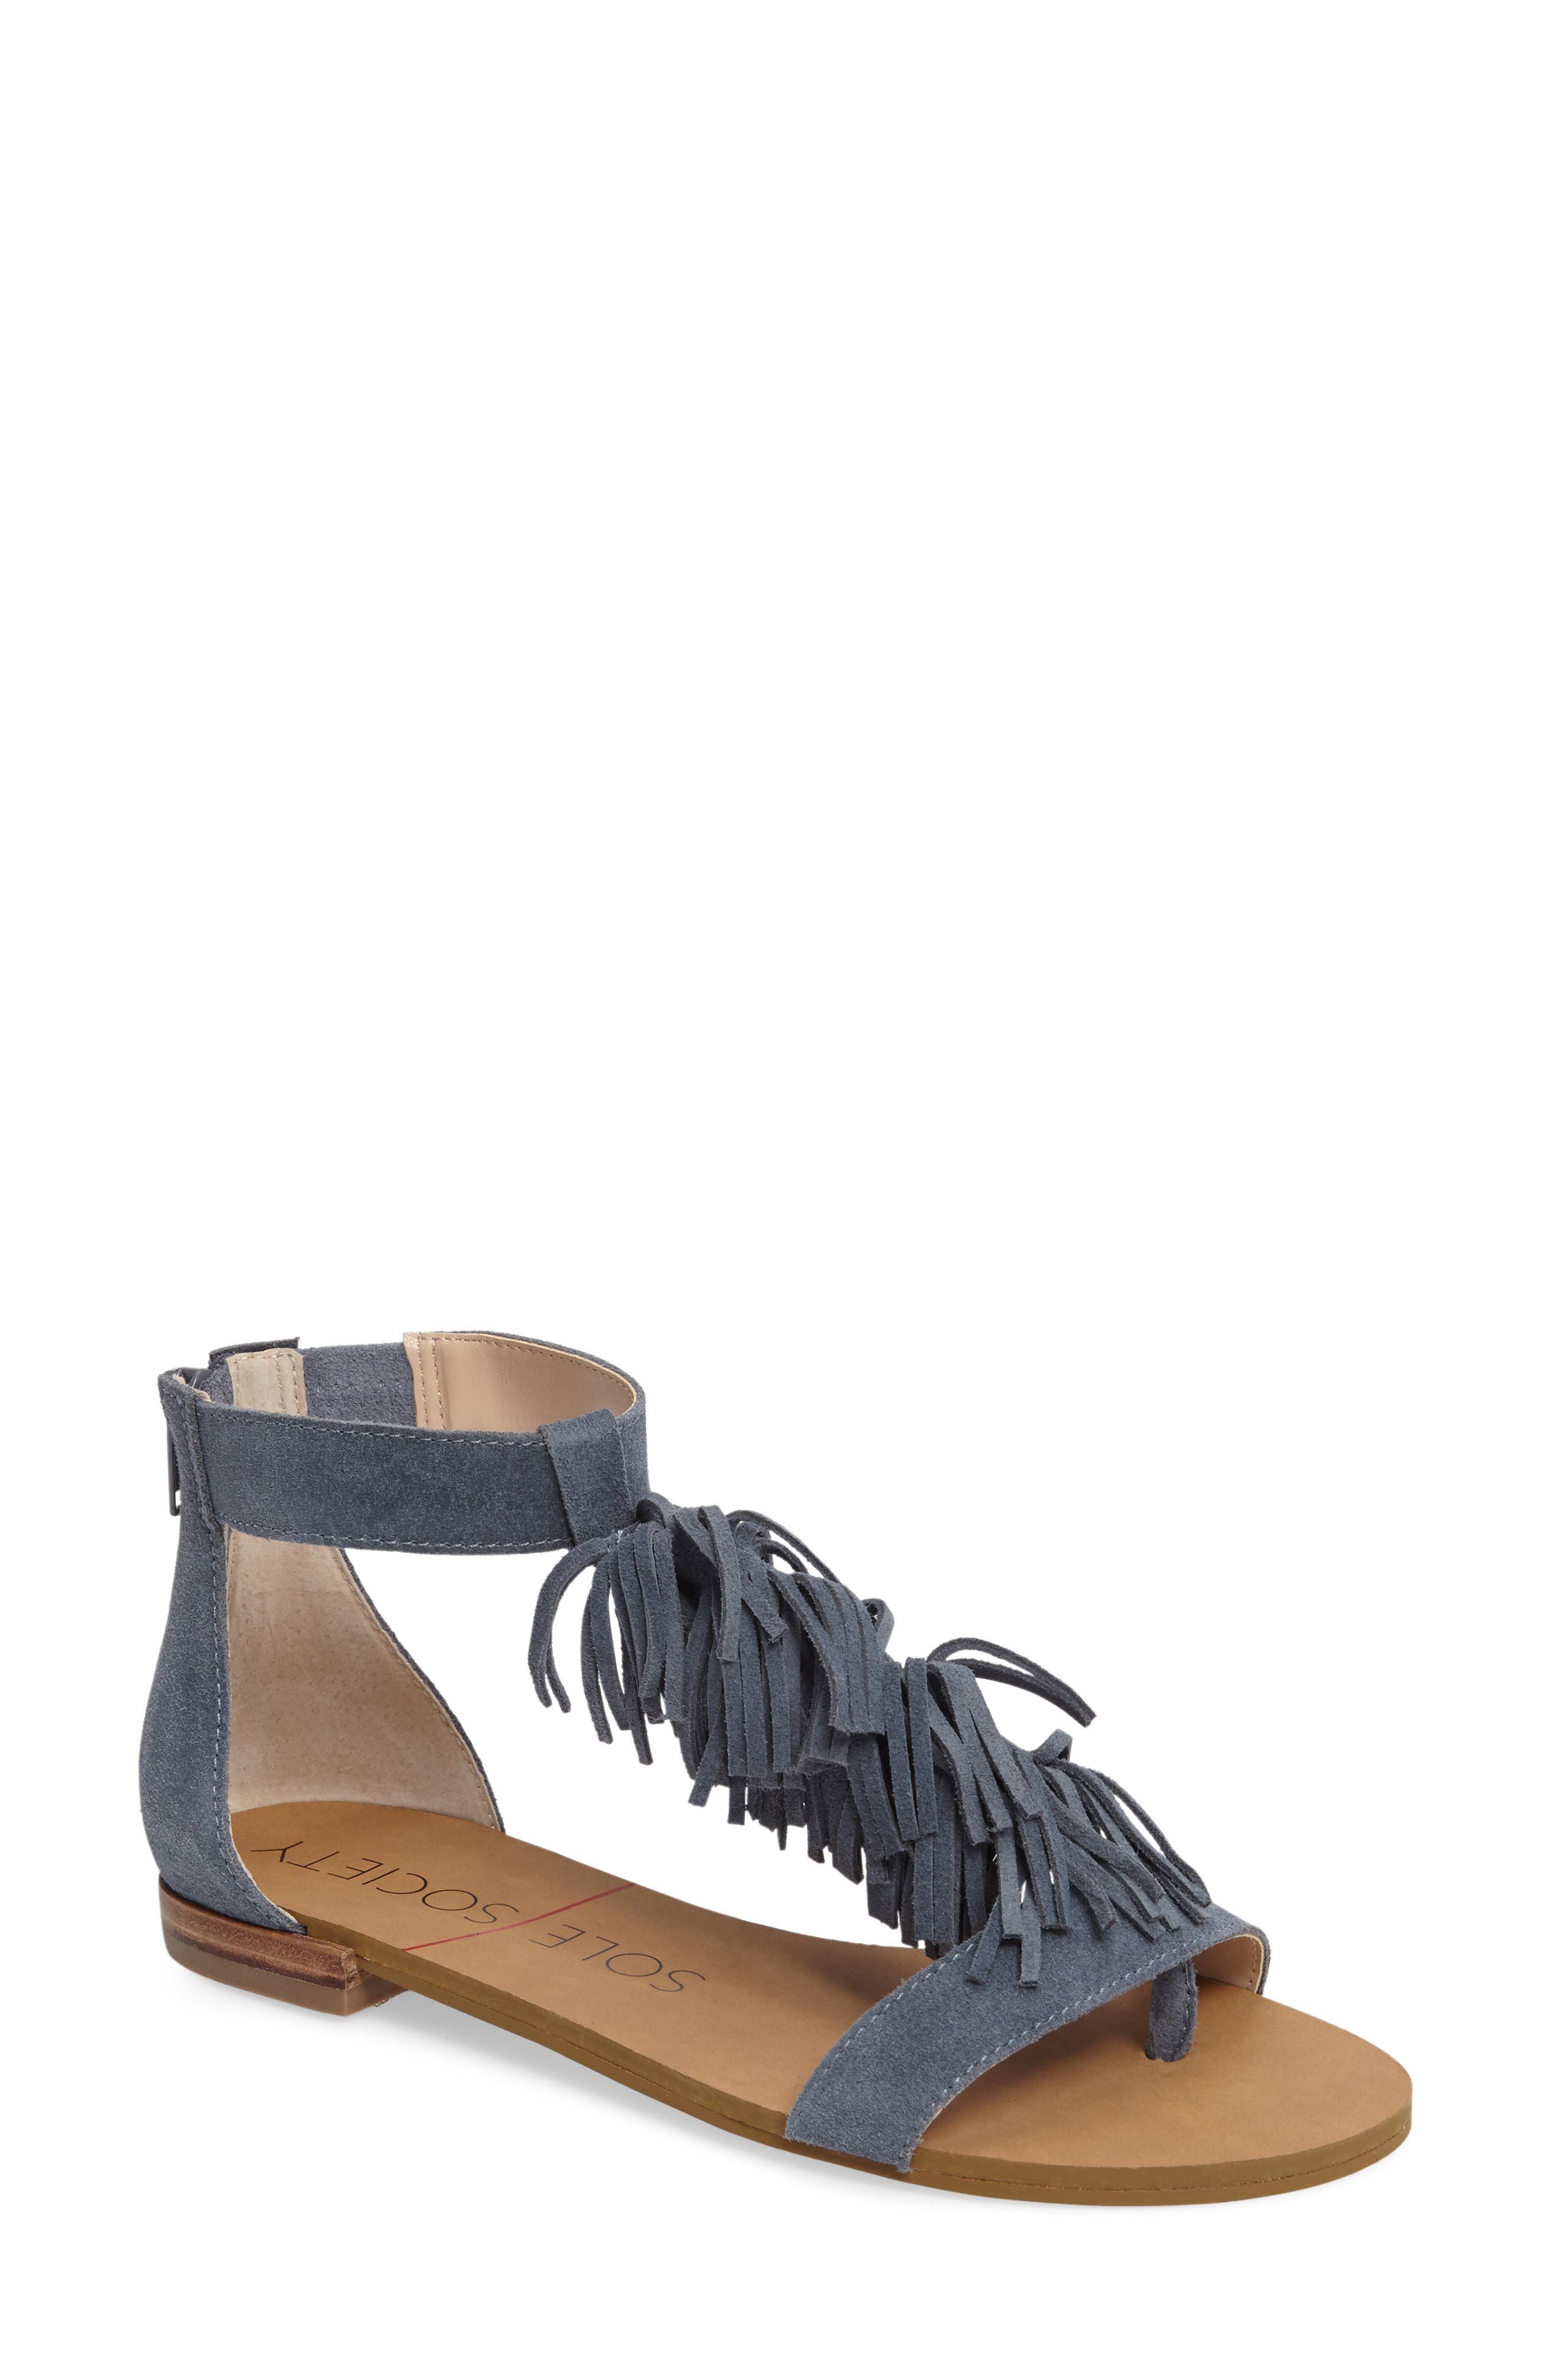 Sole Society Koa Fringed T-Strap Sandal (Women)